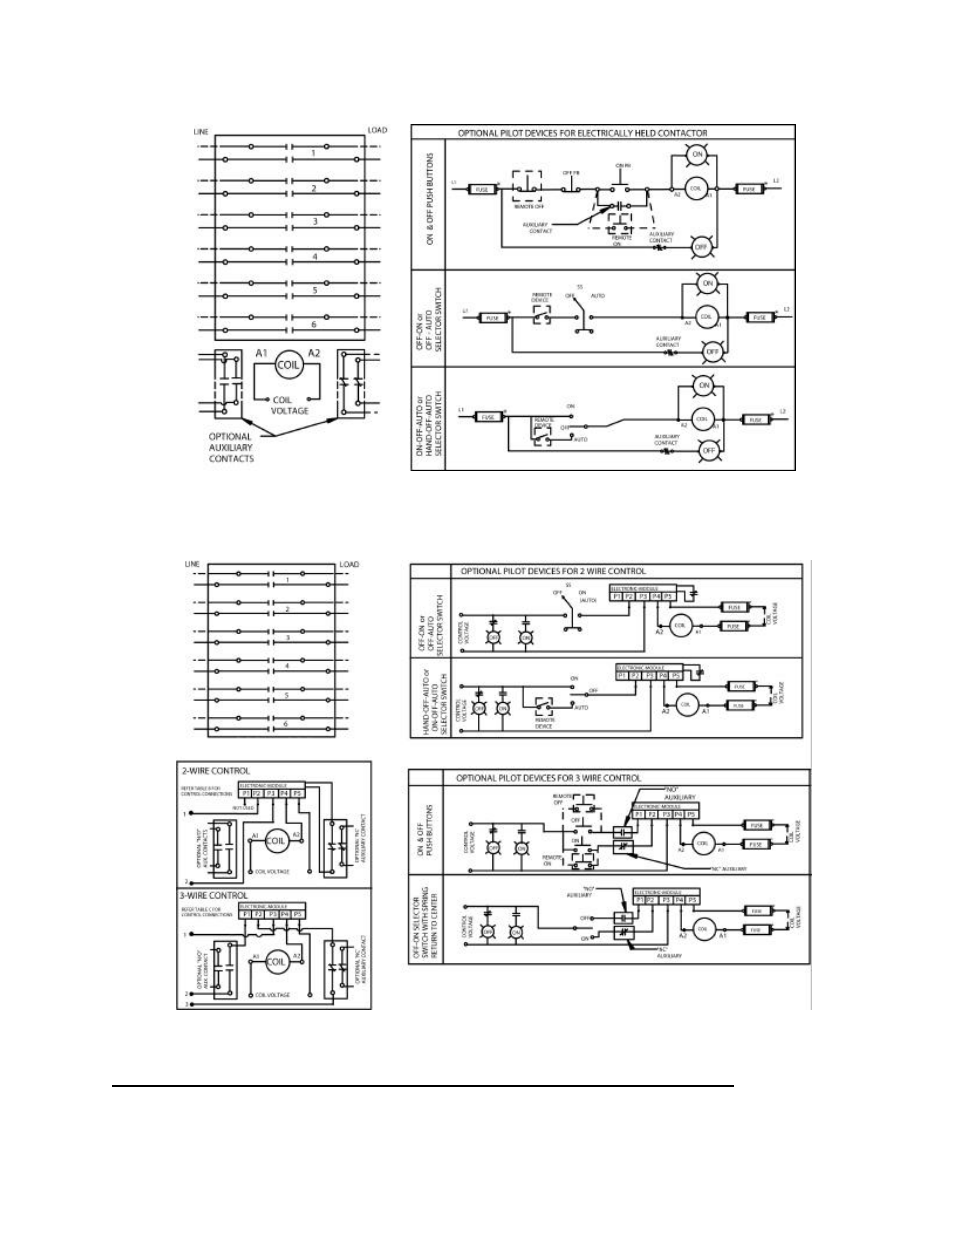 Electrically Held Contactor Wiring Diagram Content Resource Of 3 Pole Schematics Rh Parntesis Co Phase Square D